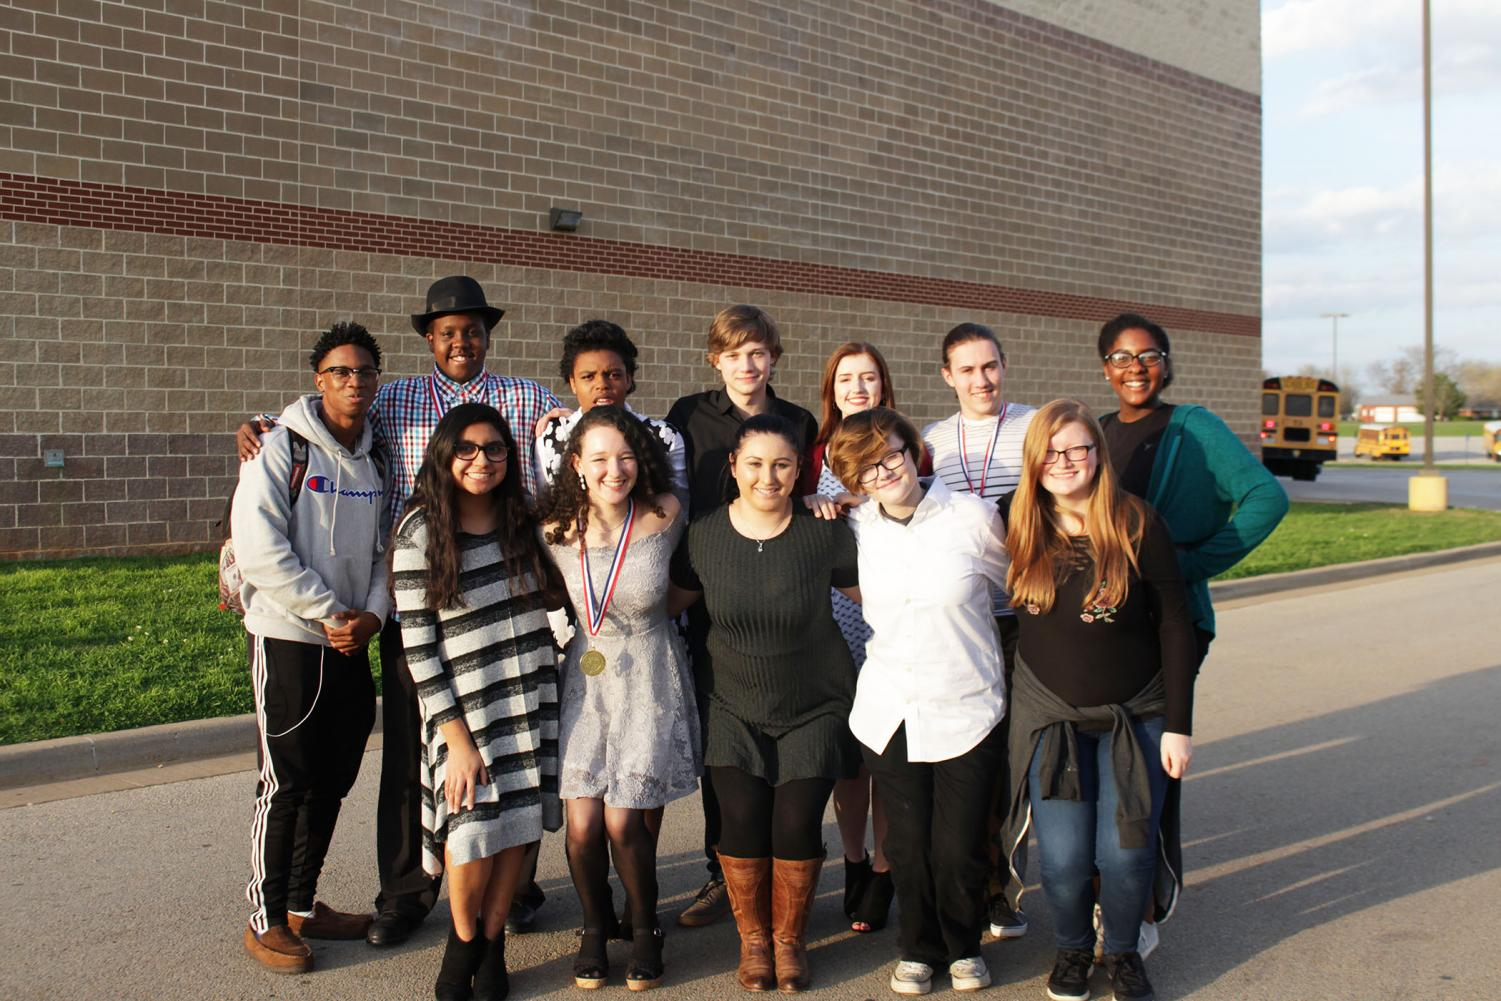 Left to right:  Row one: sophomore Dekavian Hall, senior Braeland Williams, junior Shania Pierce, junior Brandon Fugler, sophomore Carlie Massey, senior Nicholas Hoskins, freshman Brooklyn Hall Row two: junior Vanessa Zarazua, senior Bailey Green, senior Olivia Lemaire, sophomore Alex Callaway, senior Alyssa Vanhoose.